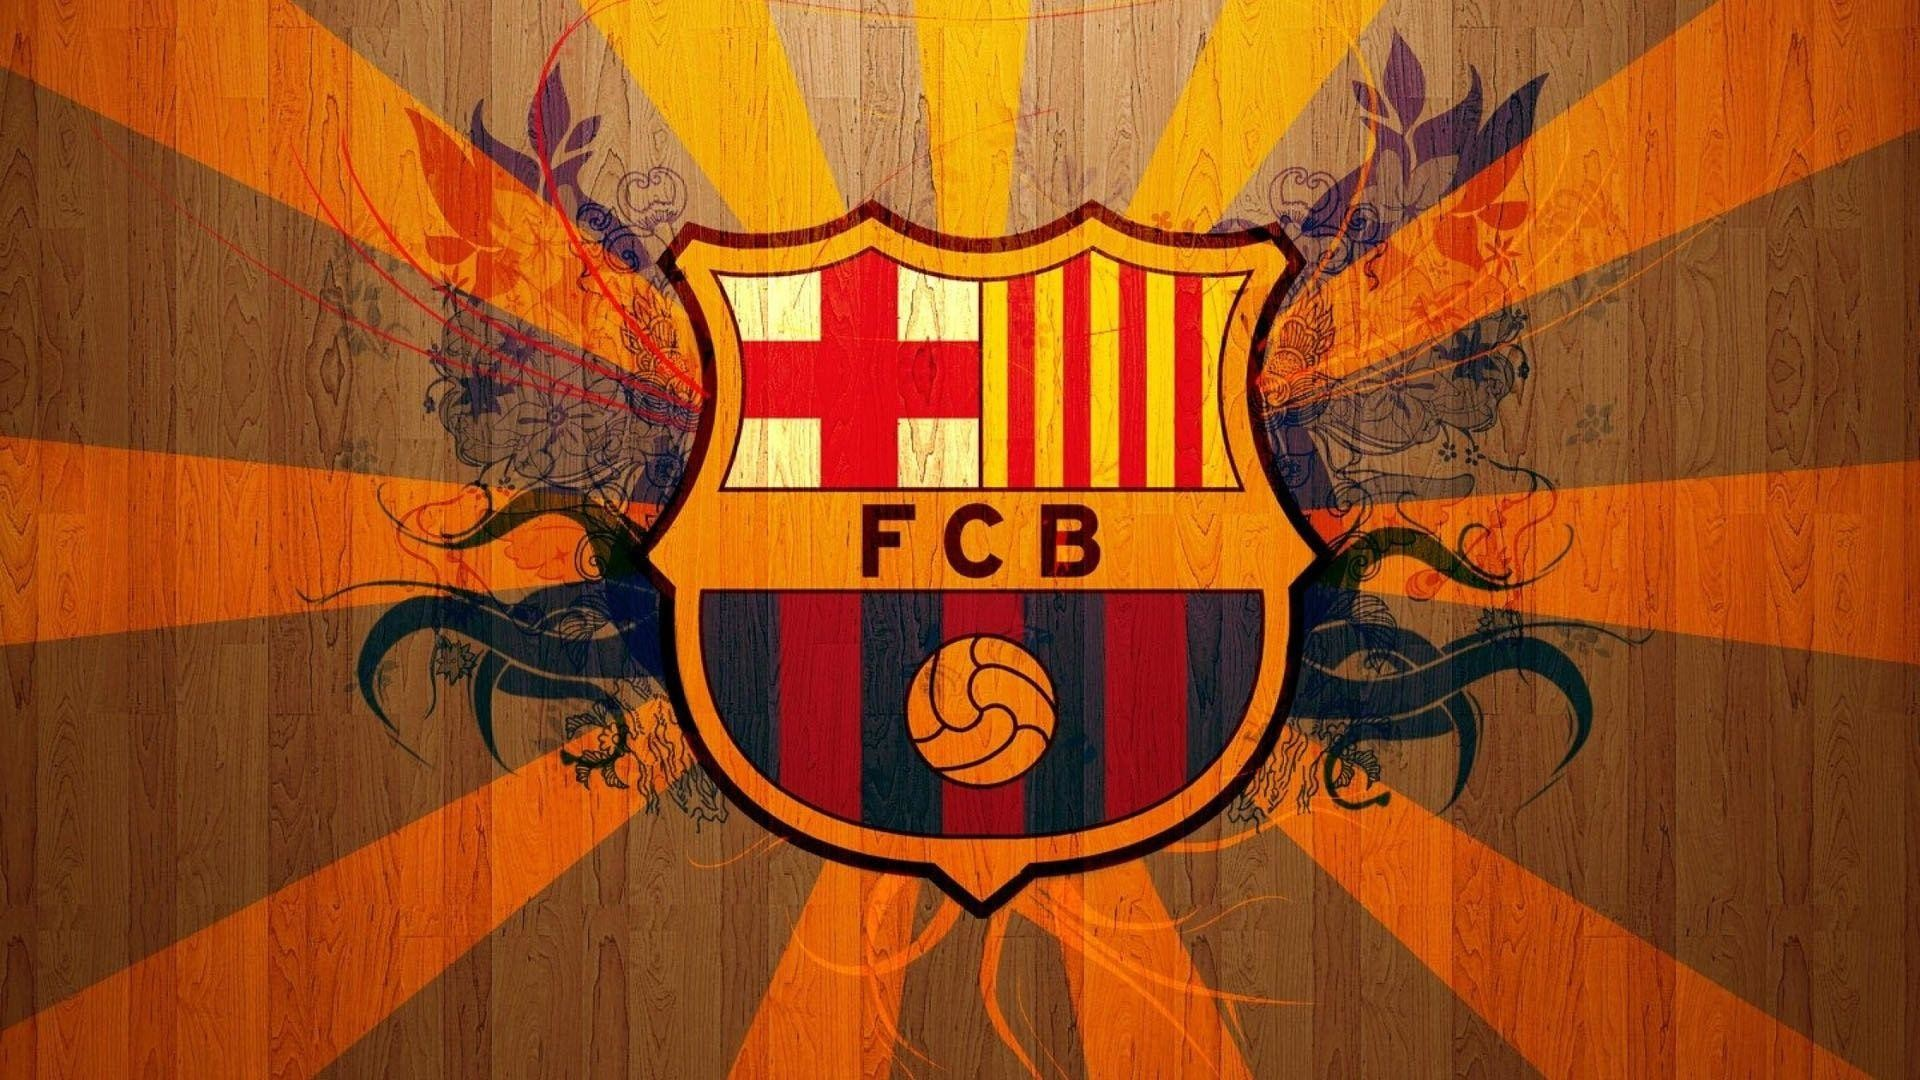 1920x1080 FC Barca Wallpaper Wide or HD | Sports Wallpapers